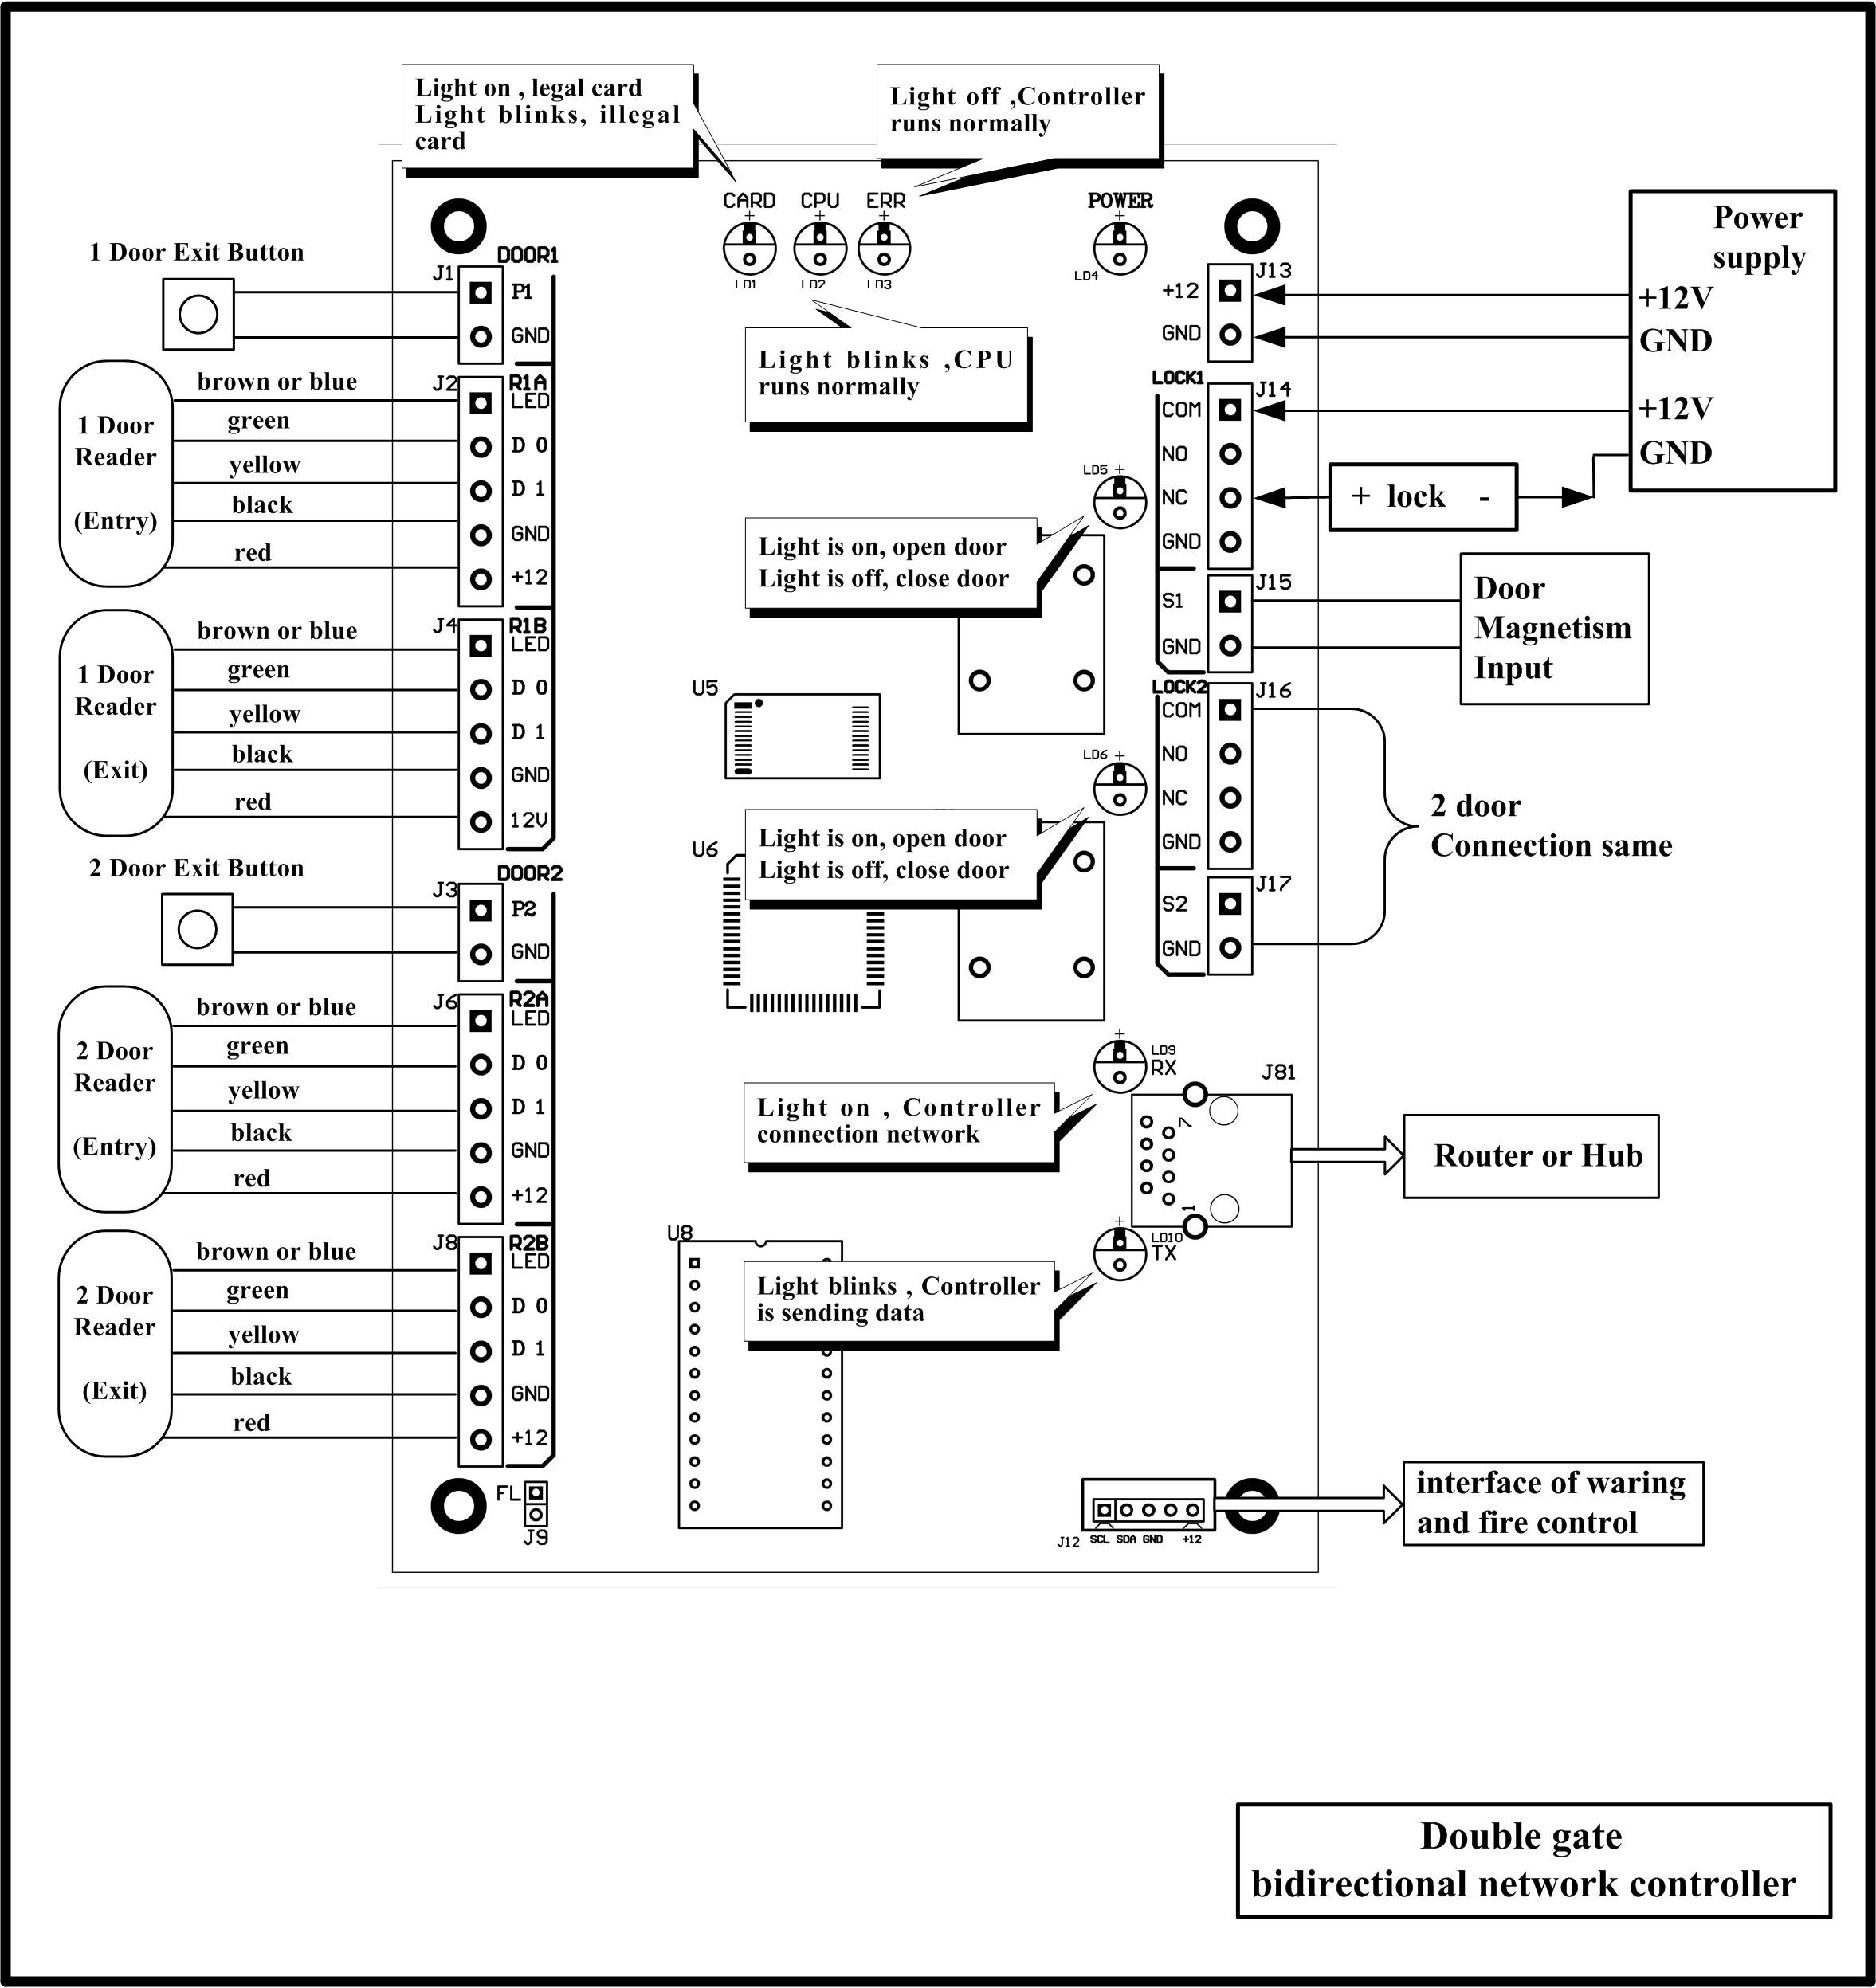 Key Card Wiring Diagram : Access control card reader wiring diagram download